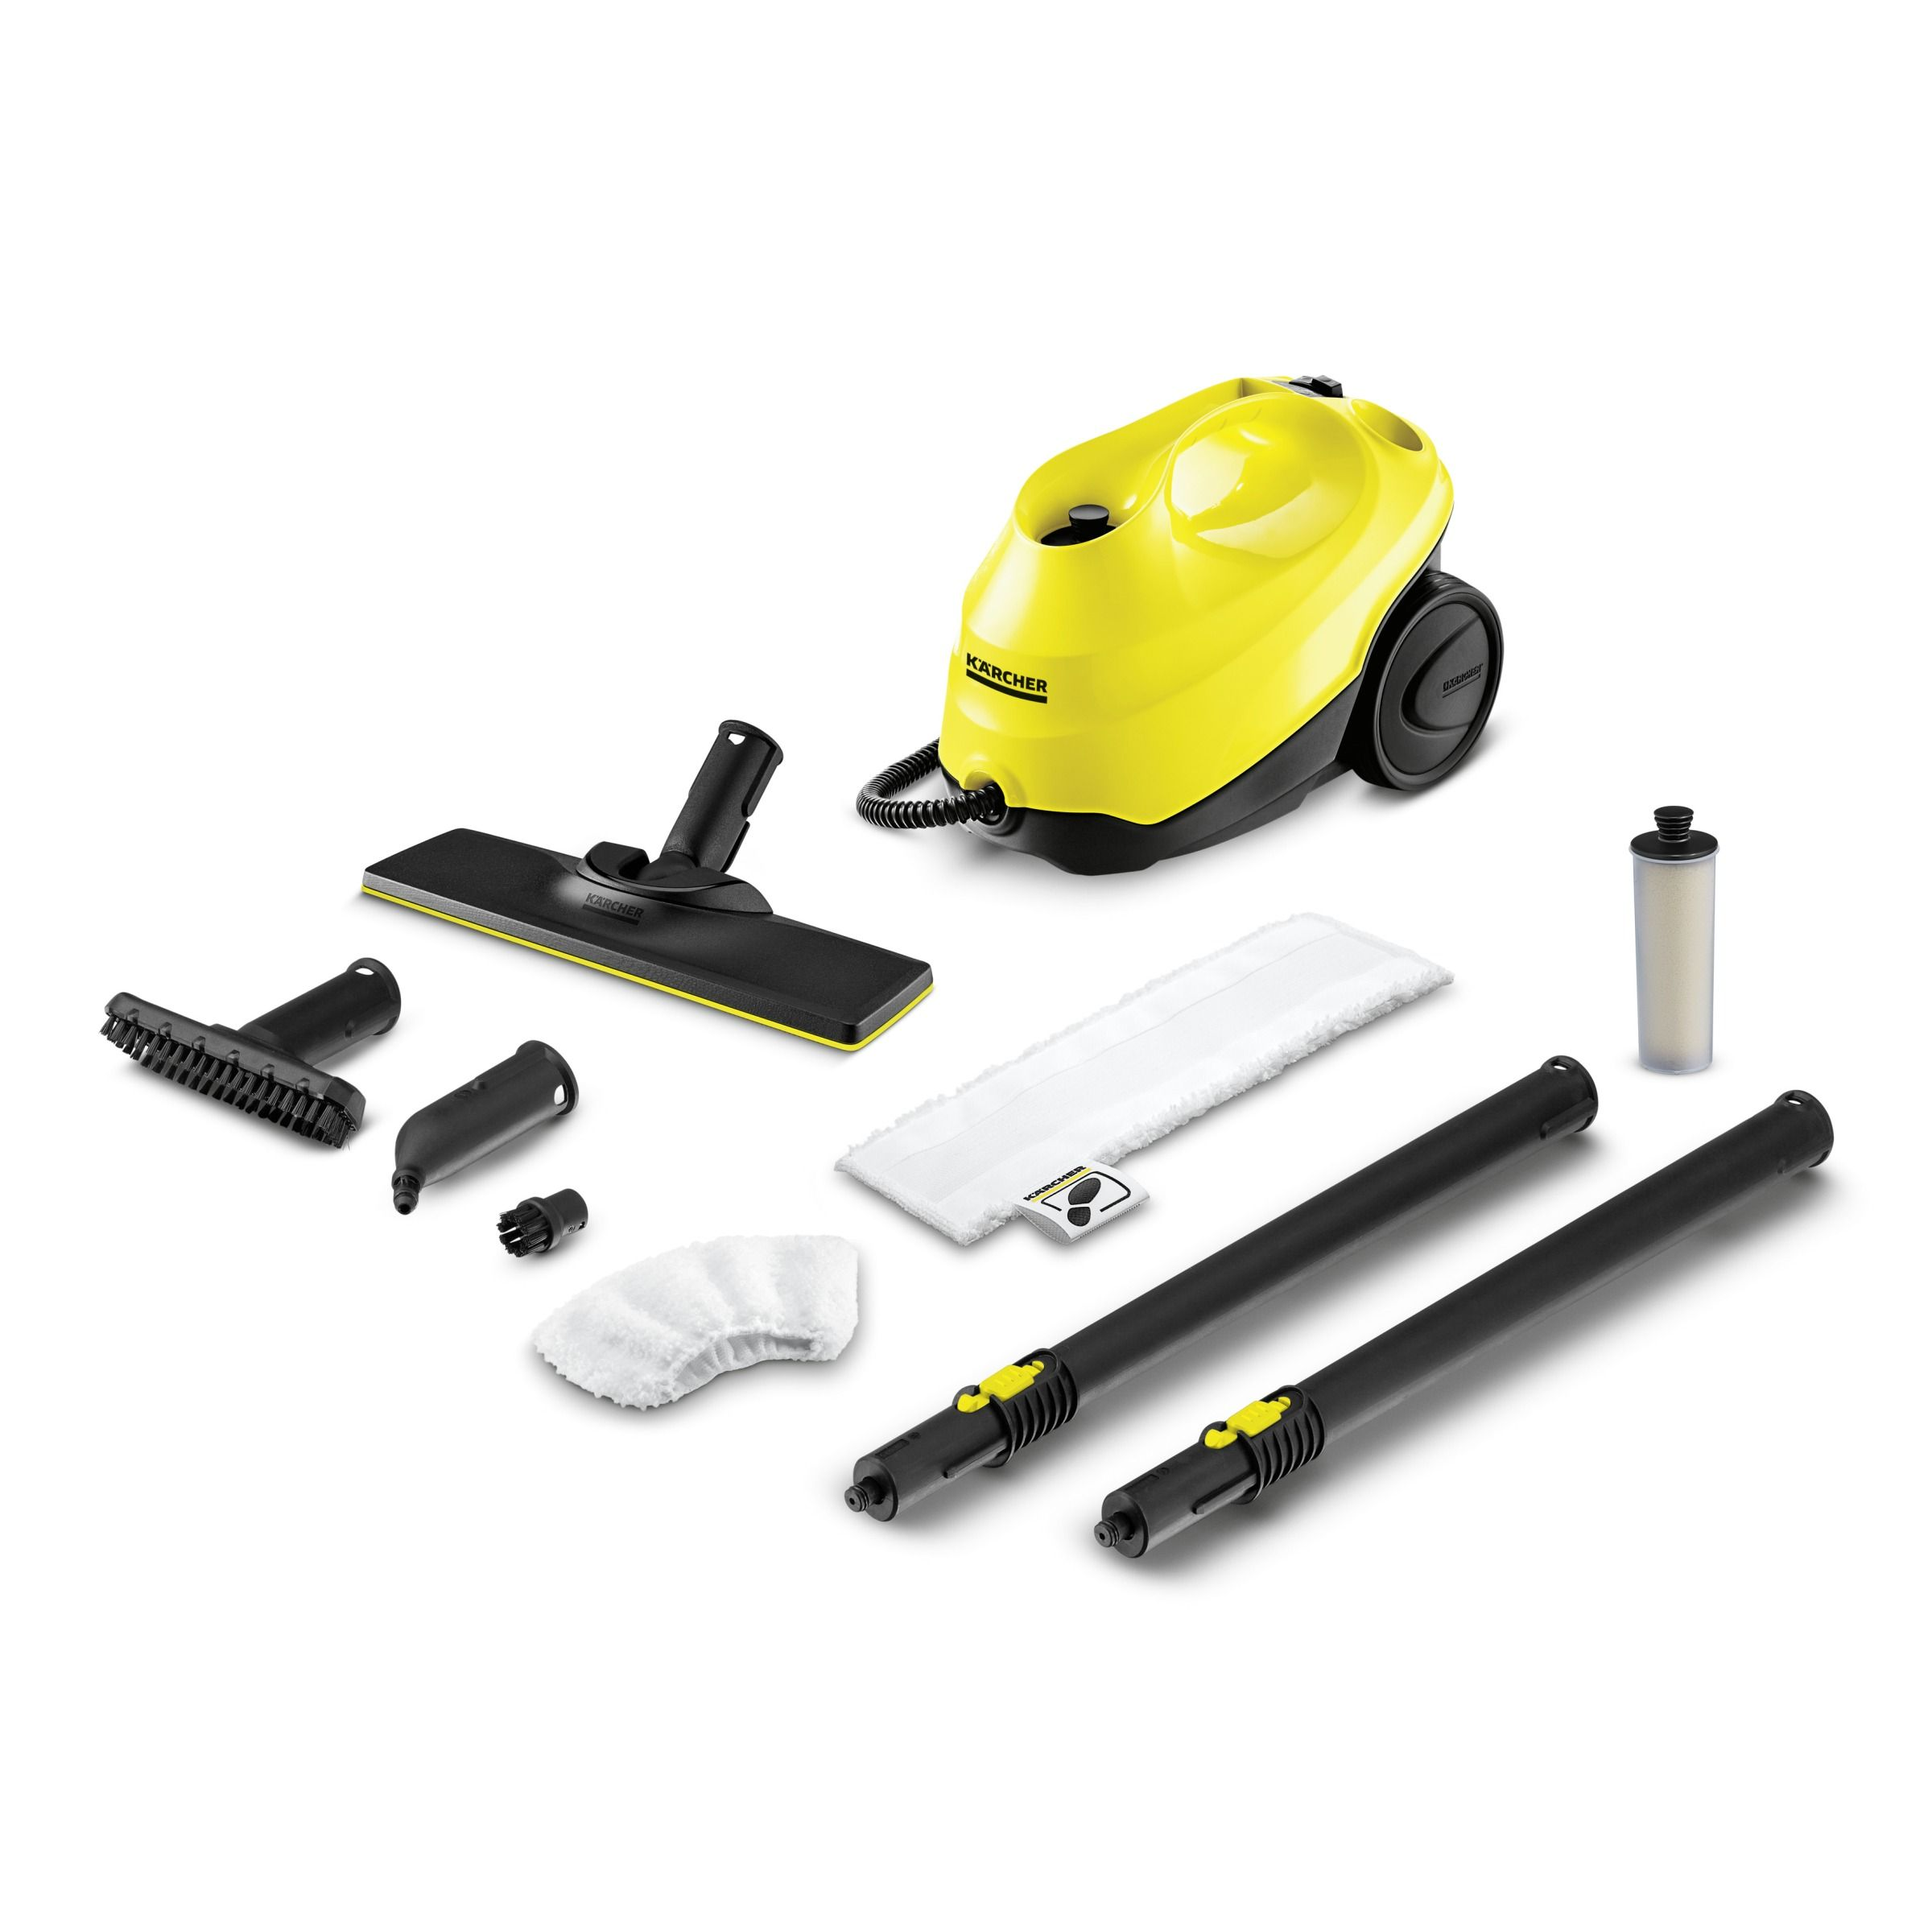 Stoomreiniger Sc 3 Stoomreiniger Karcher Sc 3 Easy Fix In 2019 Products Steam